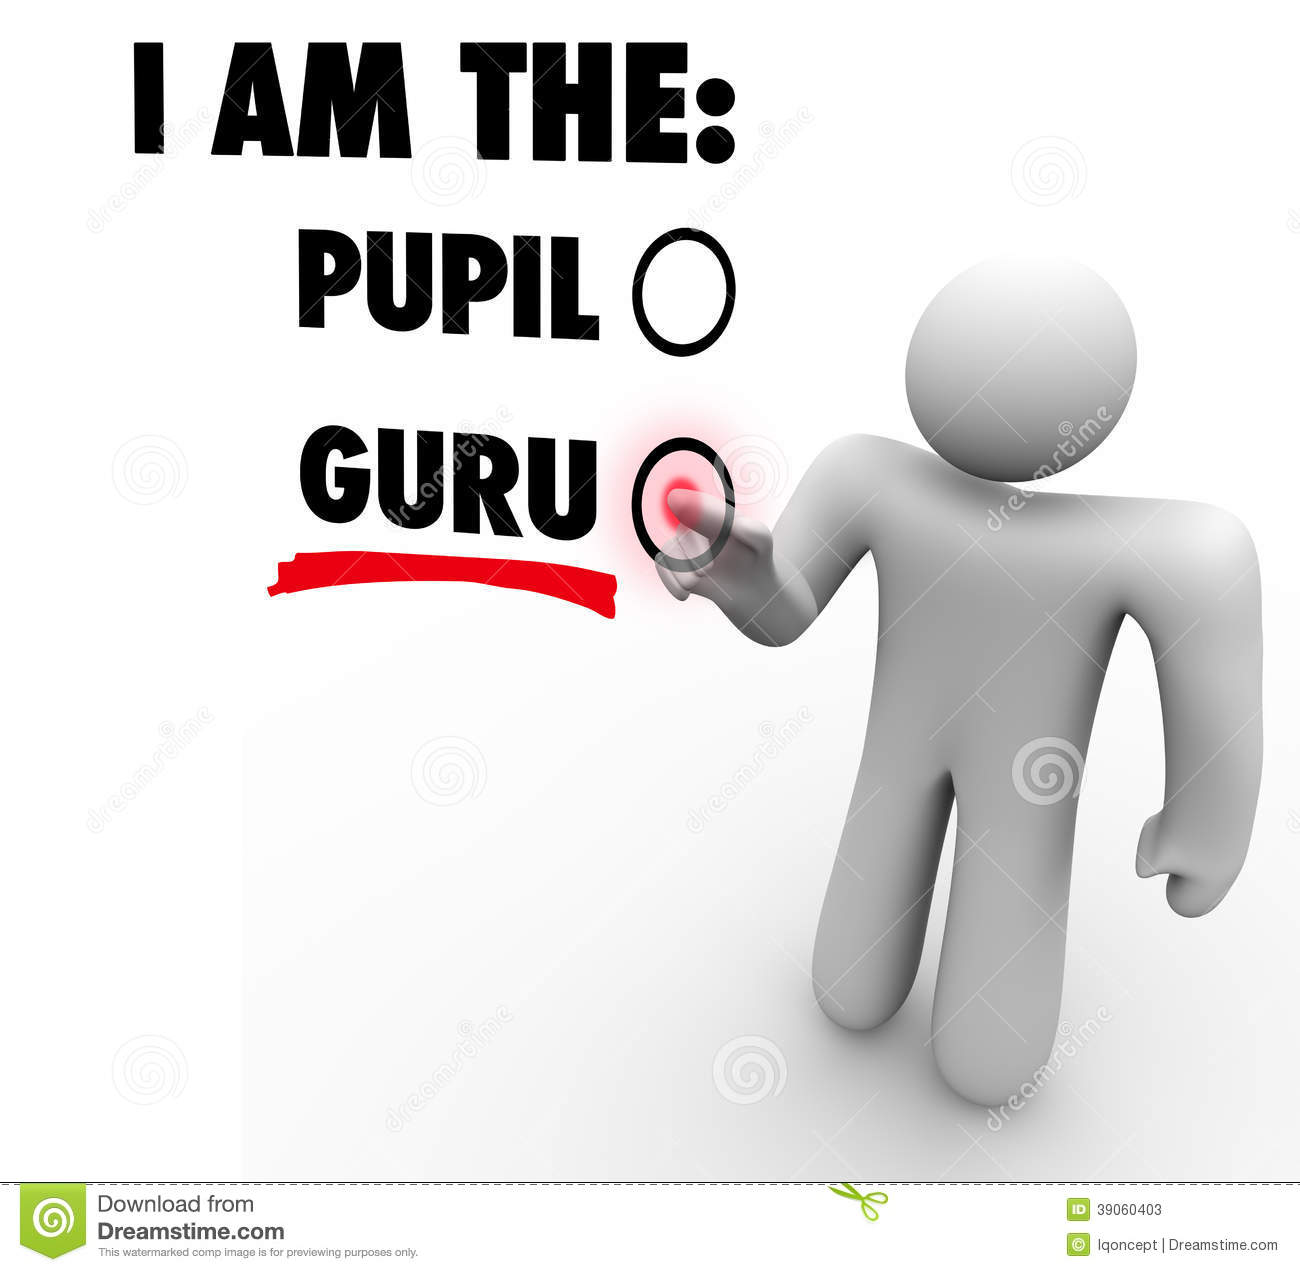 Ich bin Guru Person Choose Expert Teacher Guide